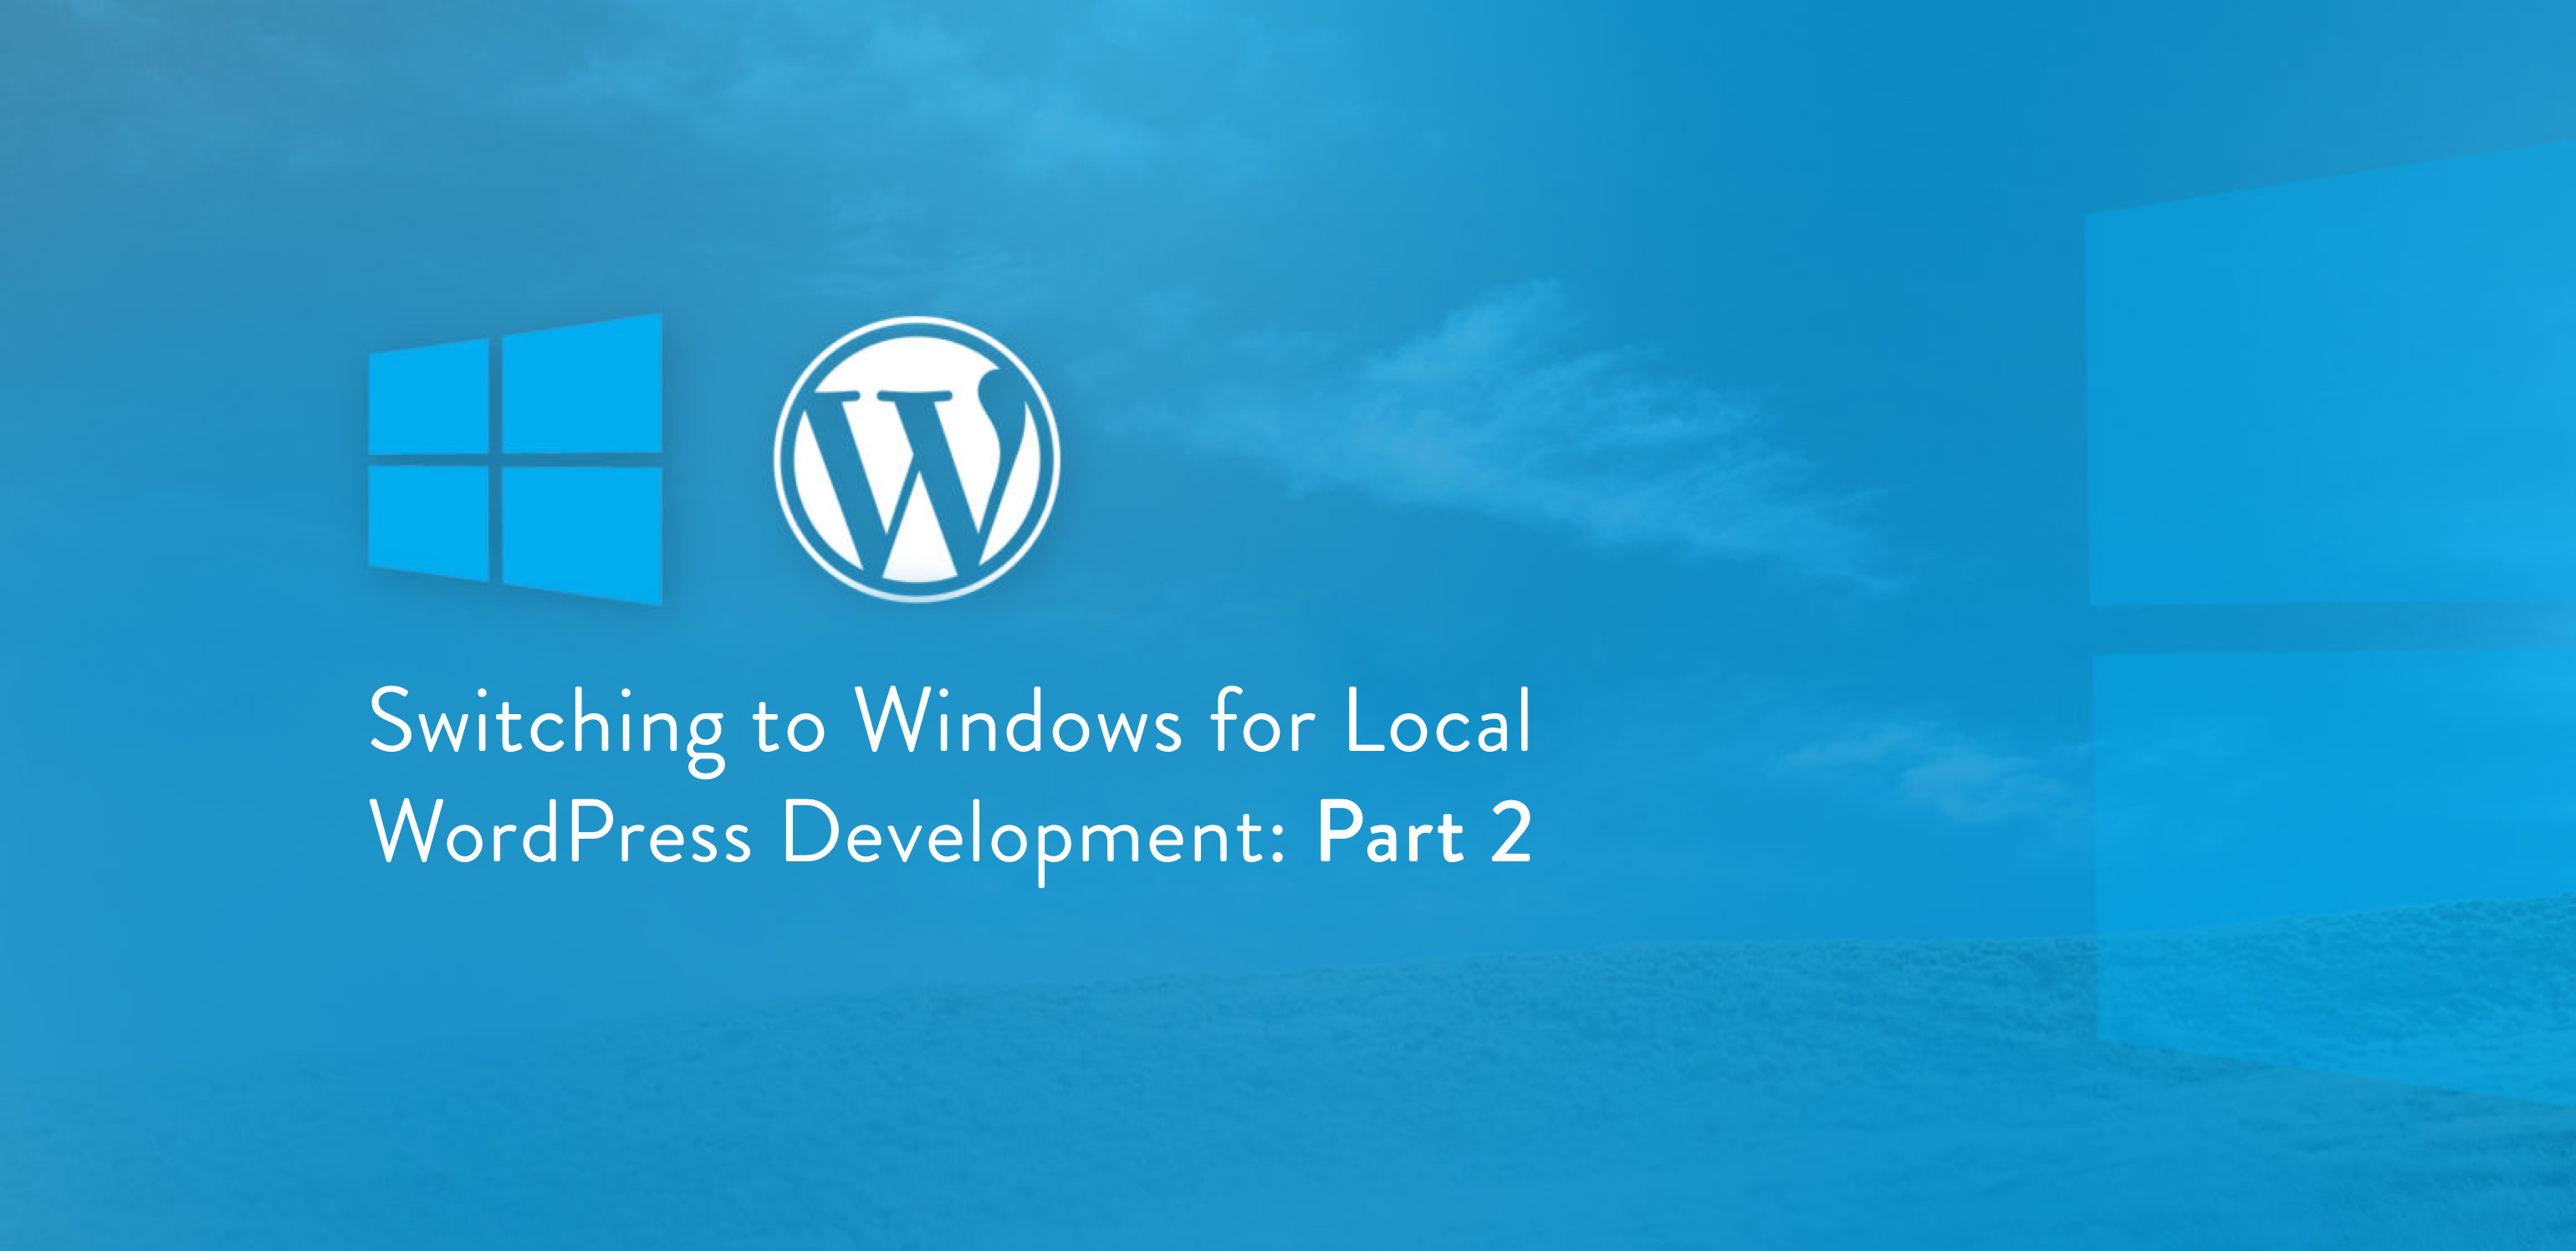 Switching to Windows for Local WordPress Development: Part 2